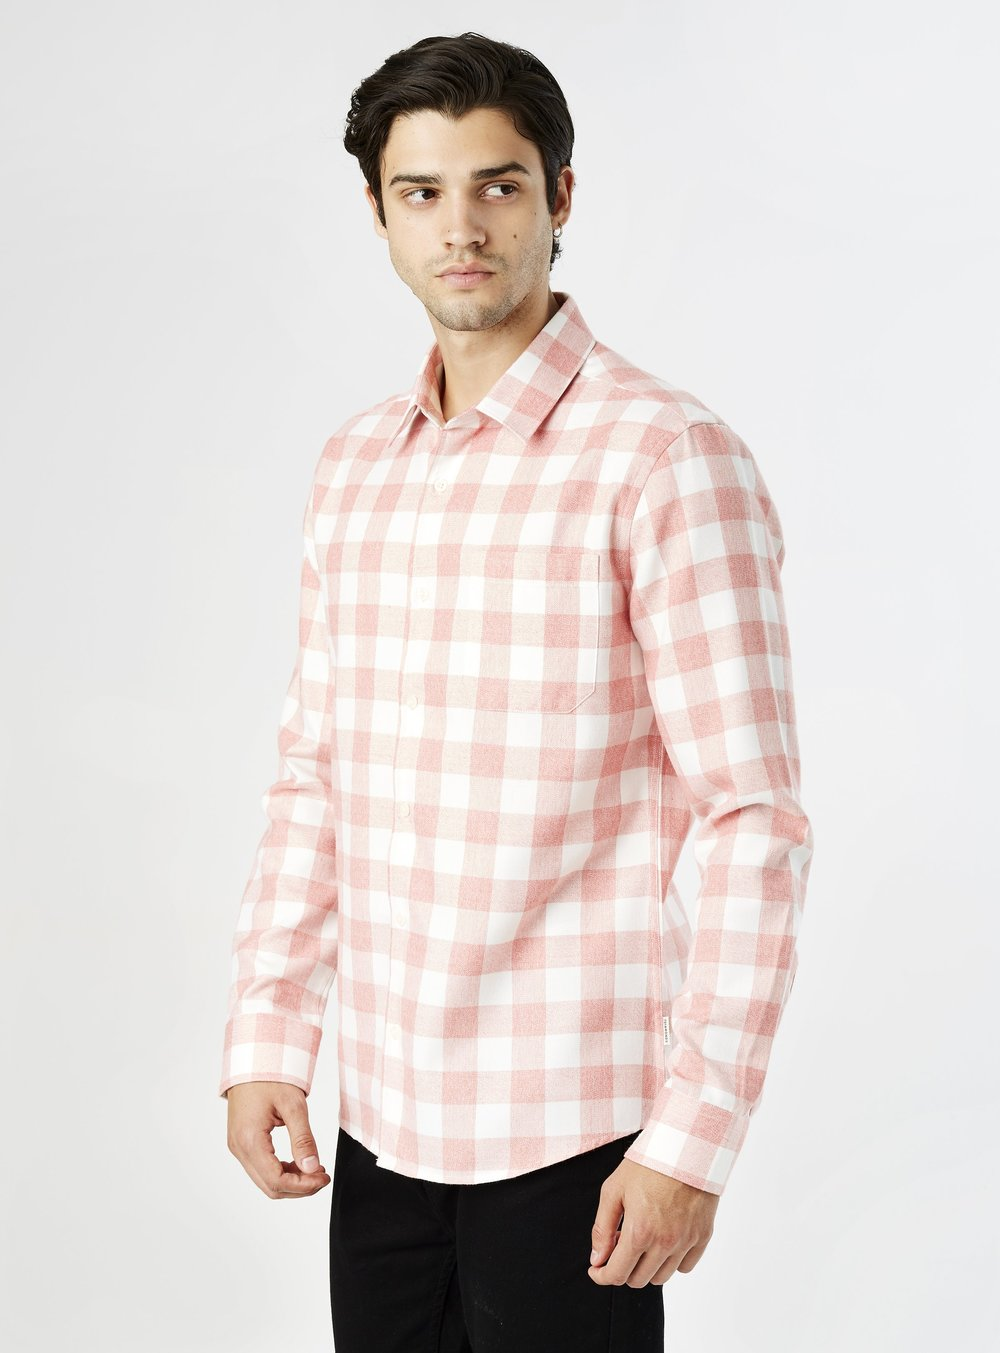 SMKF-1235-CORALWHITE-7DIAMONDS-FLANNEL-3.jpg